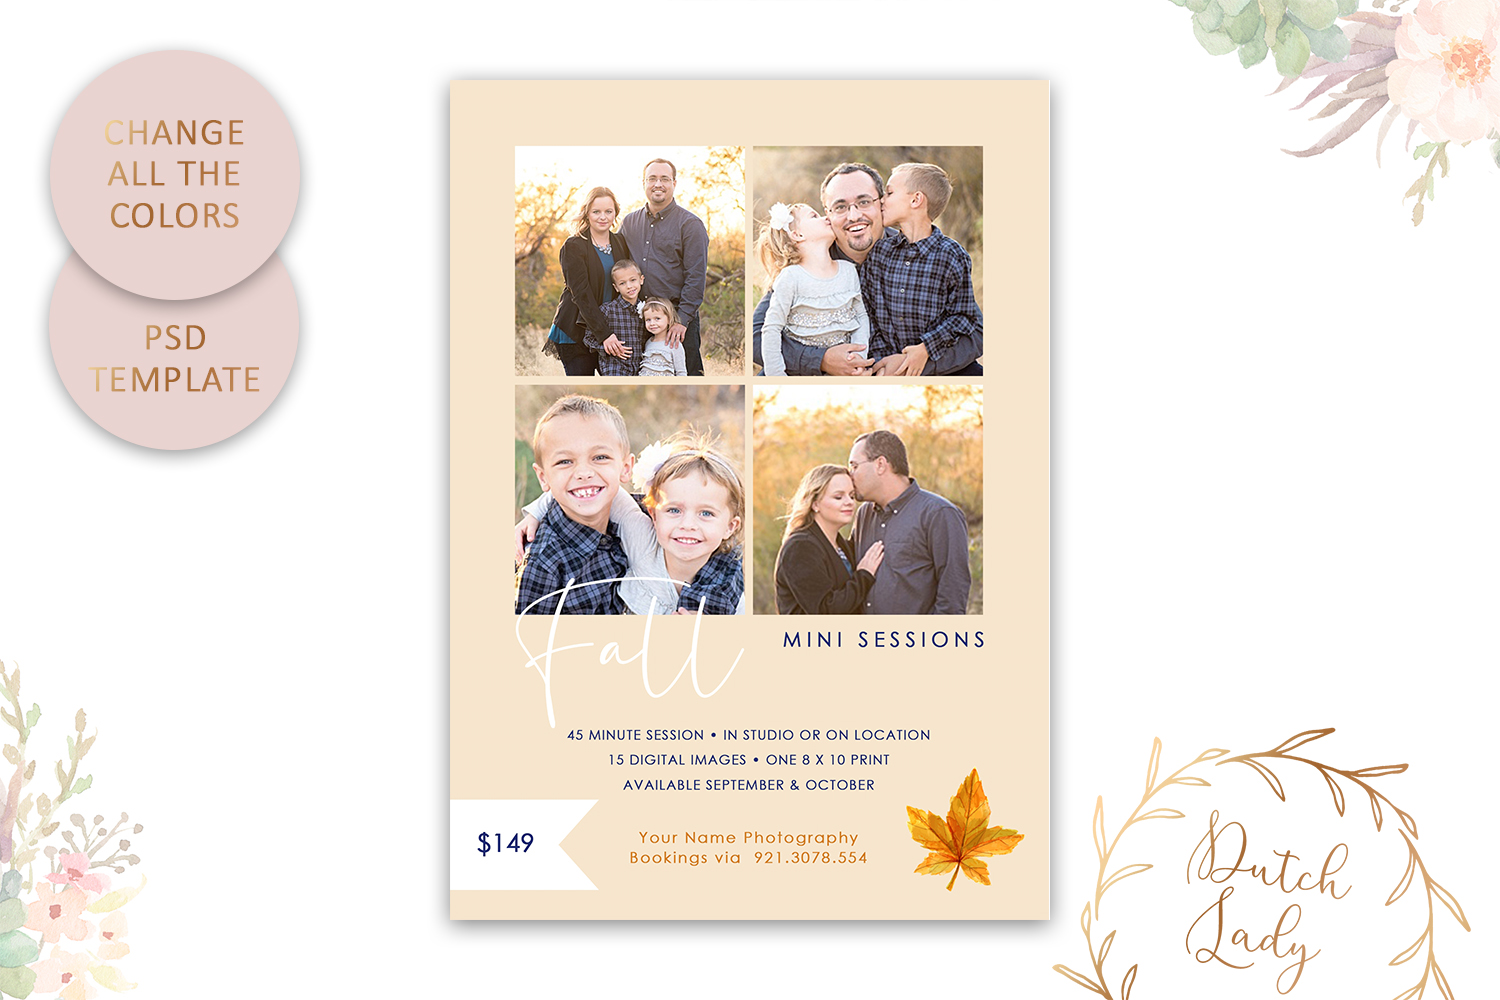 PSD Fall Photo Session Card Template - Design #47 example image 3